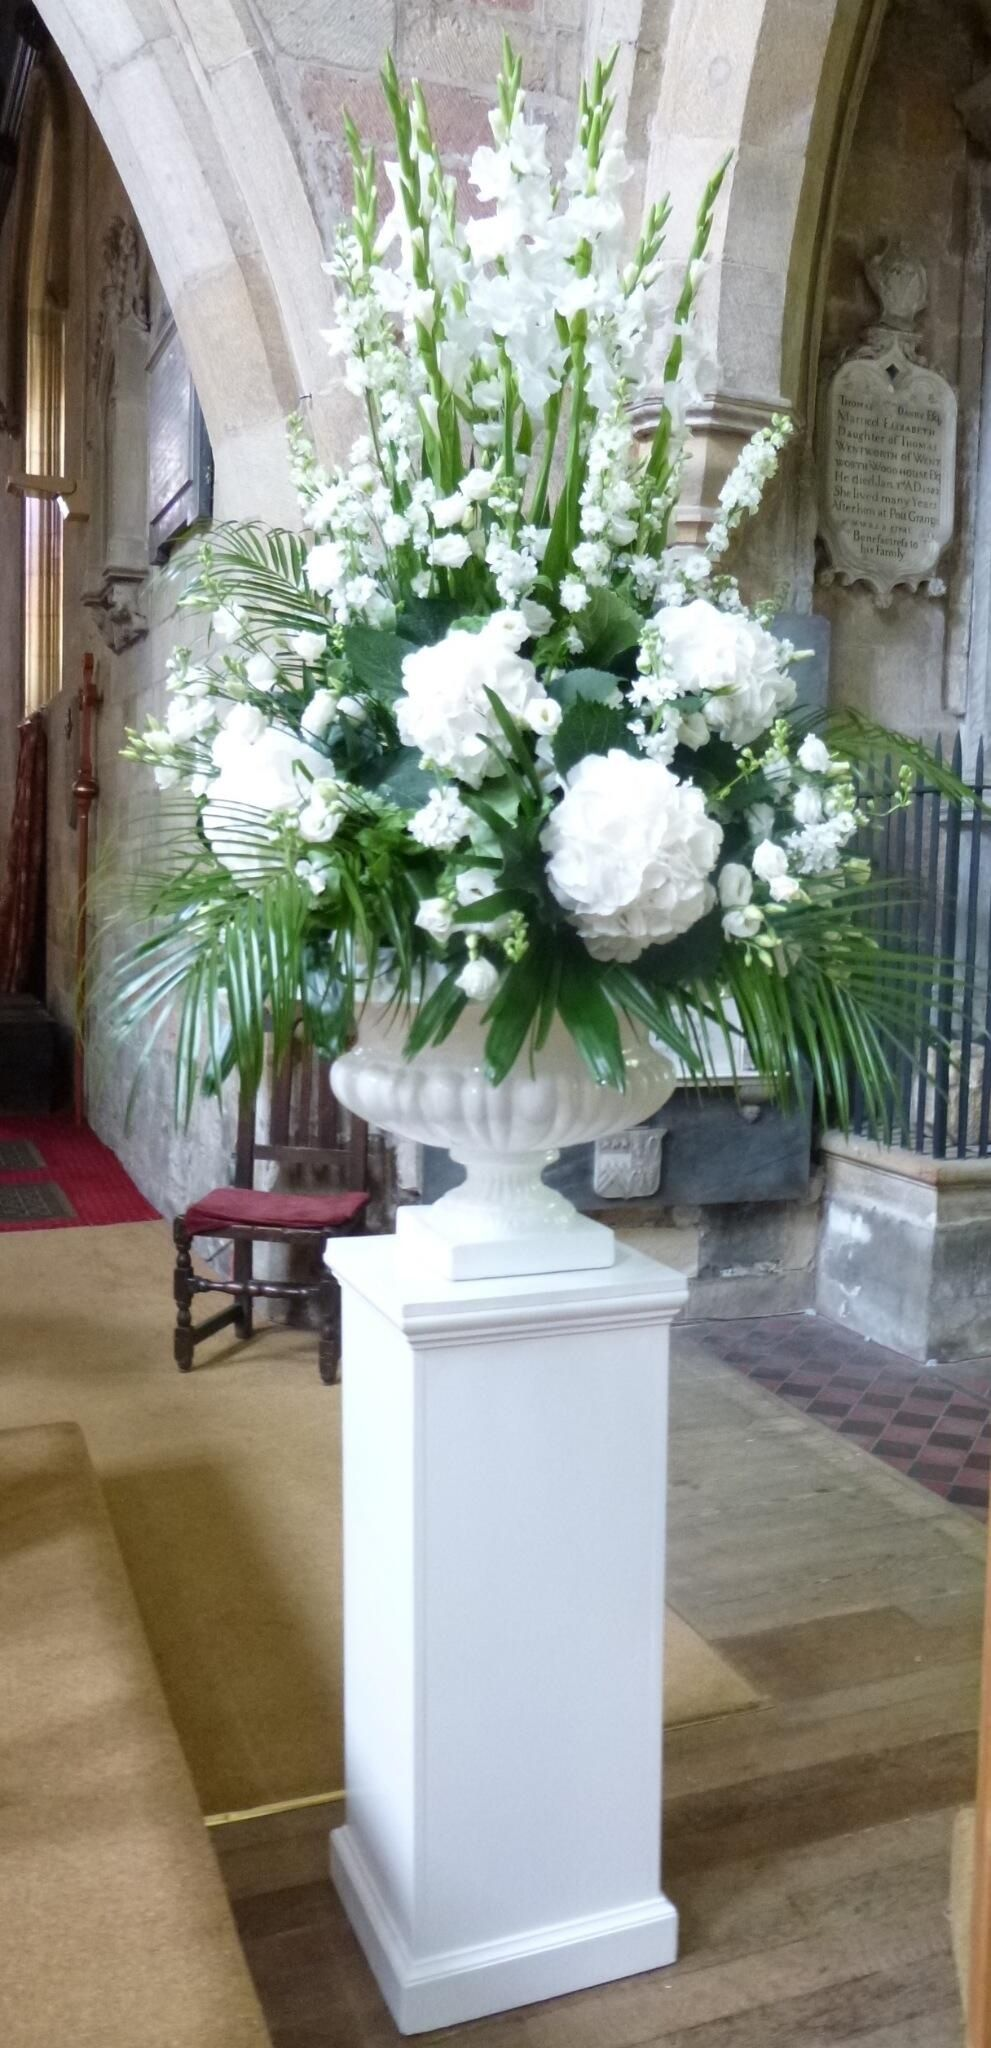 Just inside this vast church two magnificently traditional white pedestal arrangement reviewsmspy